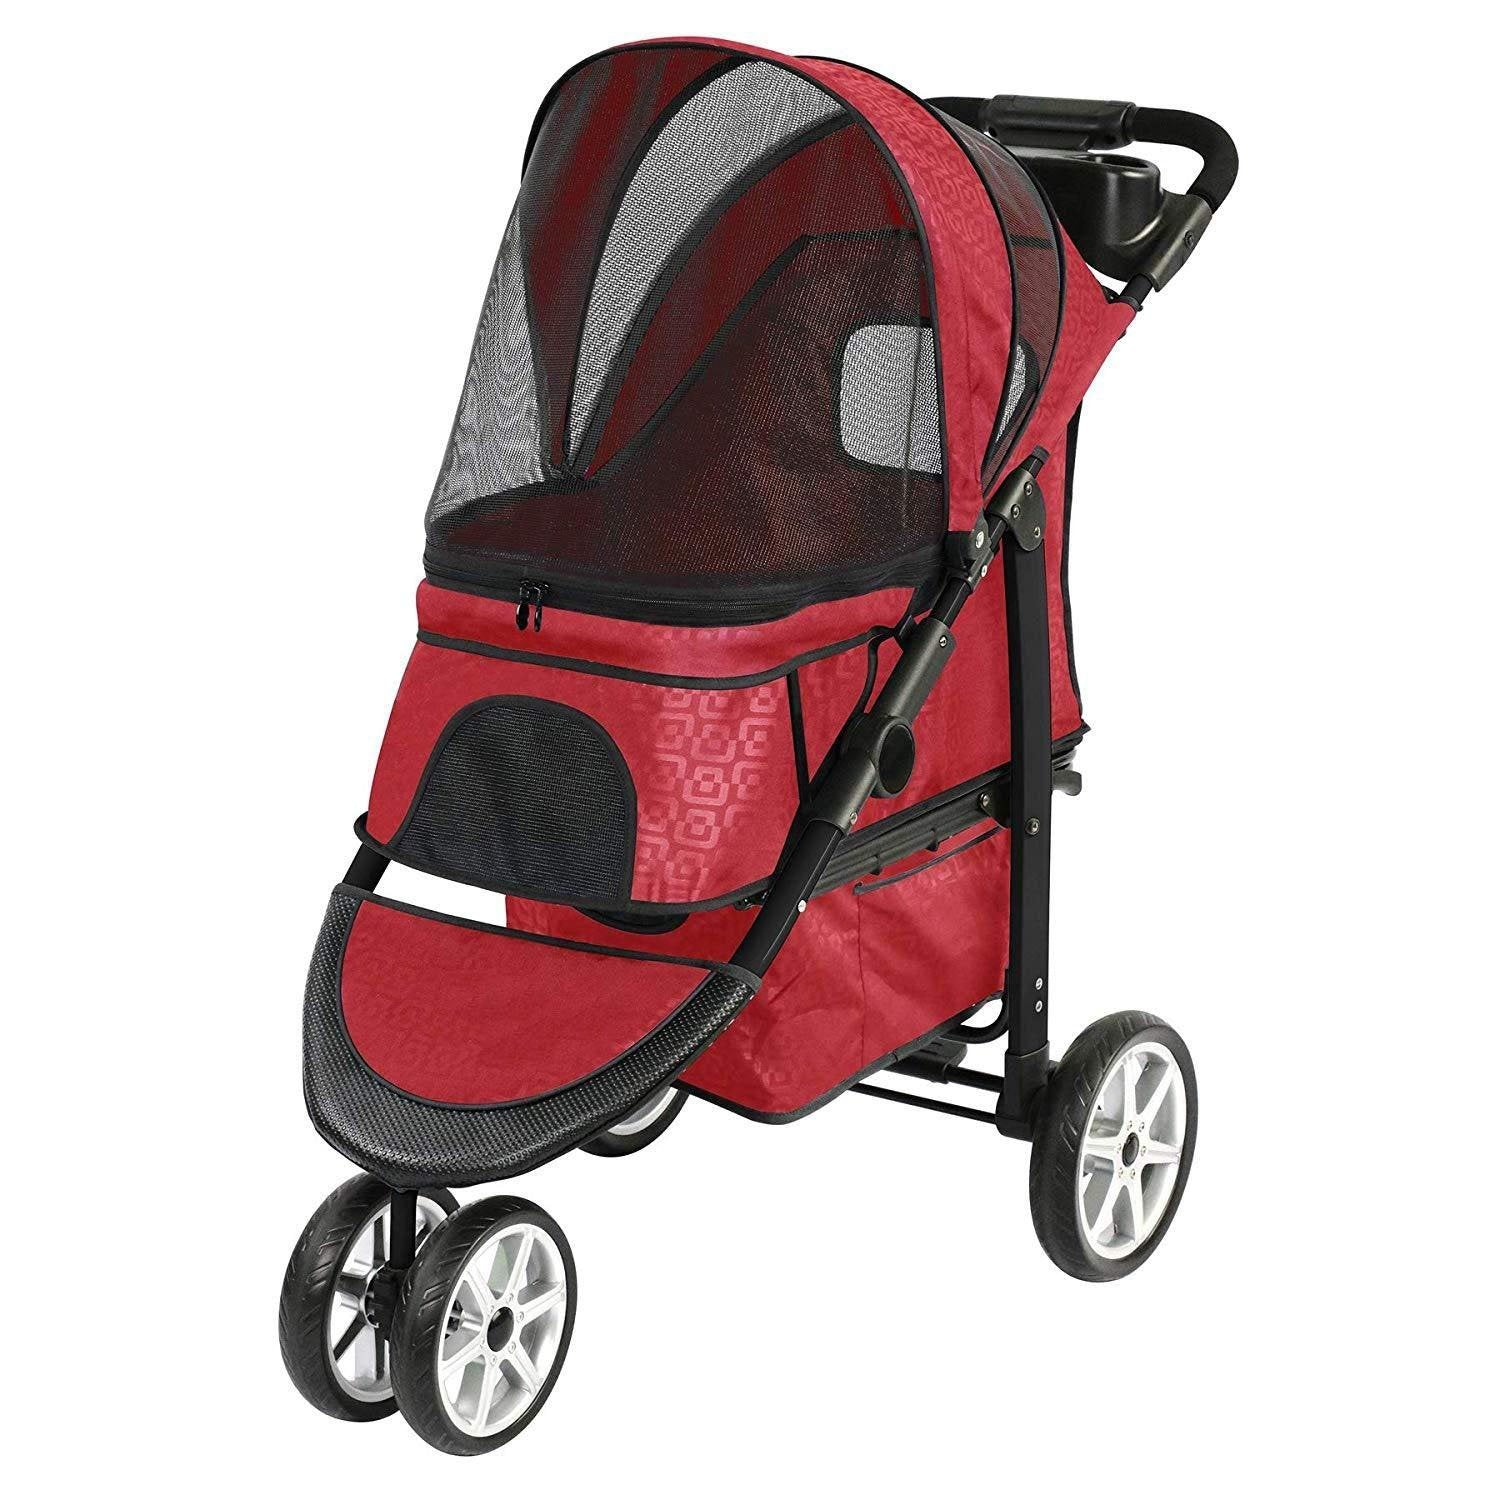 Lightweight All-Terrain Stroller For Dogs And Cats